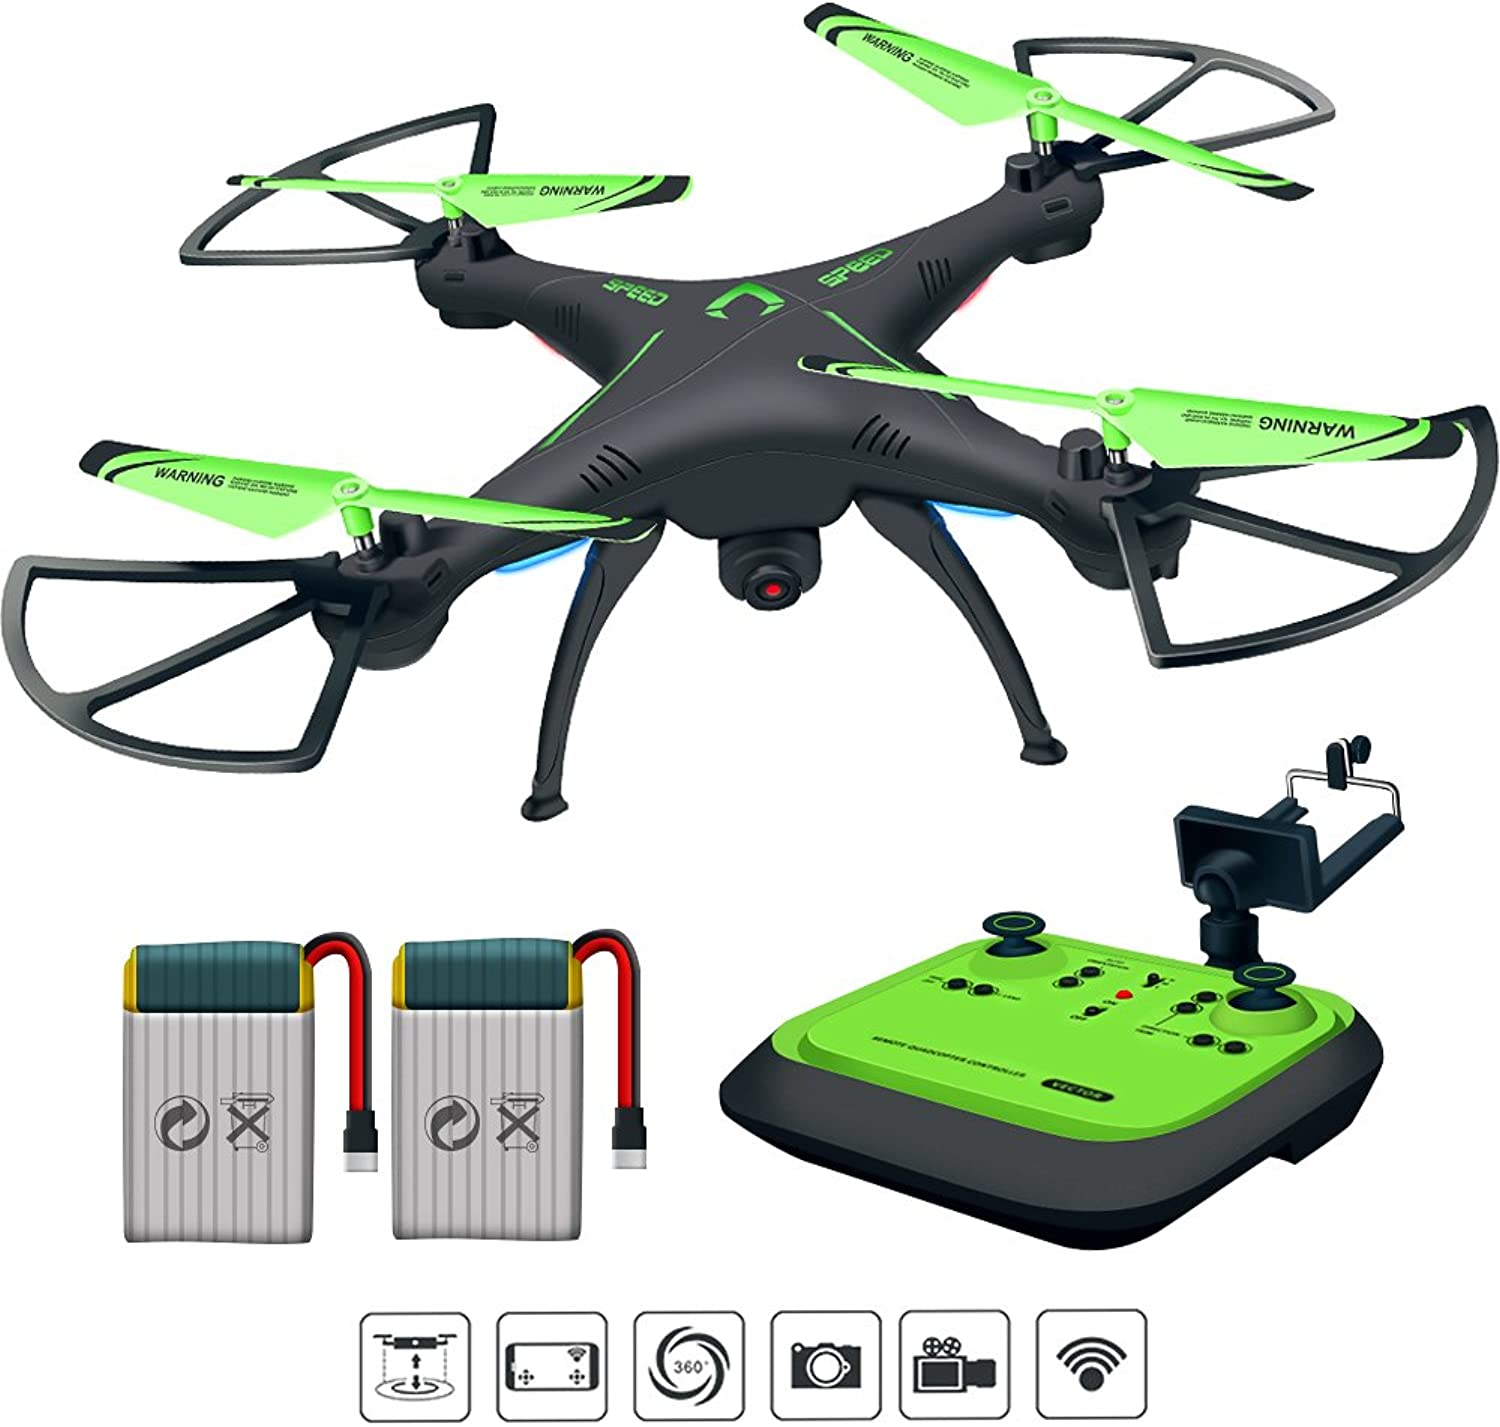 HonorY Drone for Beginners, FPV Remote Control Quadcopter Drone with Onekey Land and Headless Mode, Drone with Camera Live Video 720P HD Camera Drone for Kids Adults Beginners (Green)